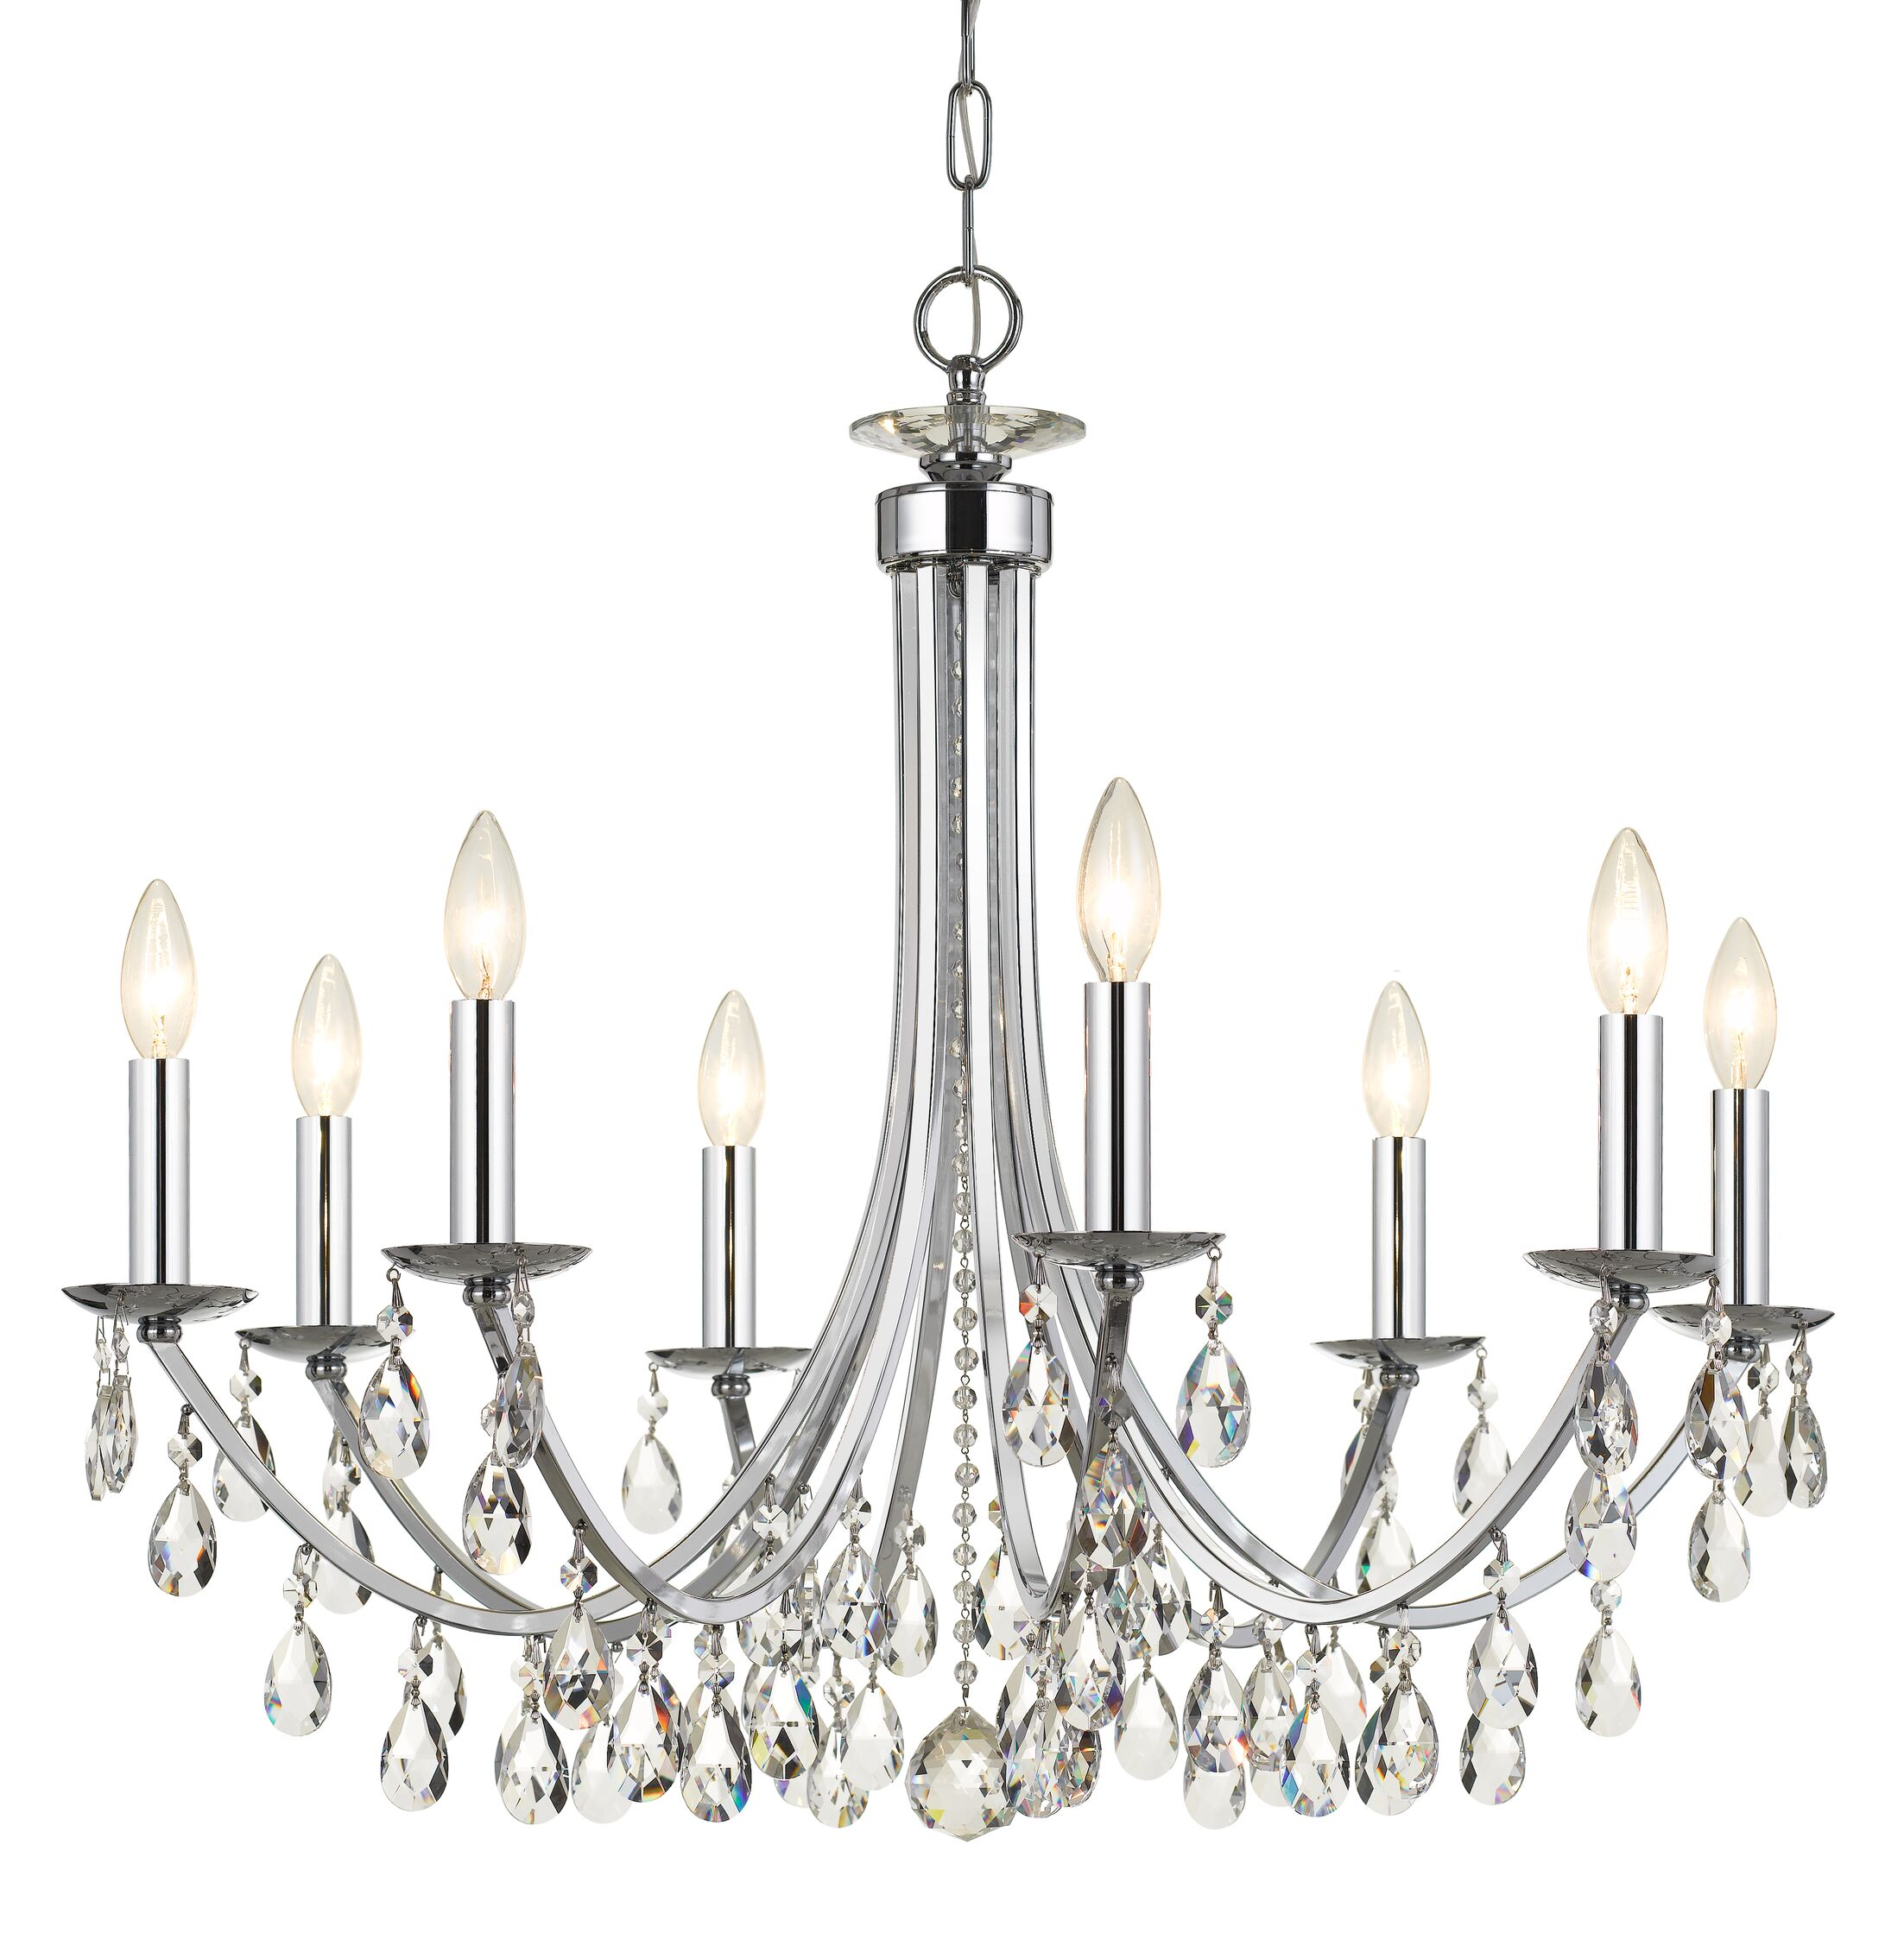 Catchings 8-Light Candle-Style Chandelier Finish: Chrome